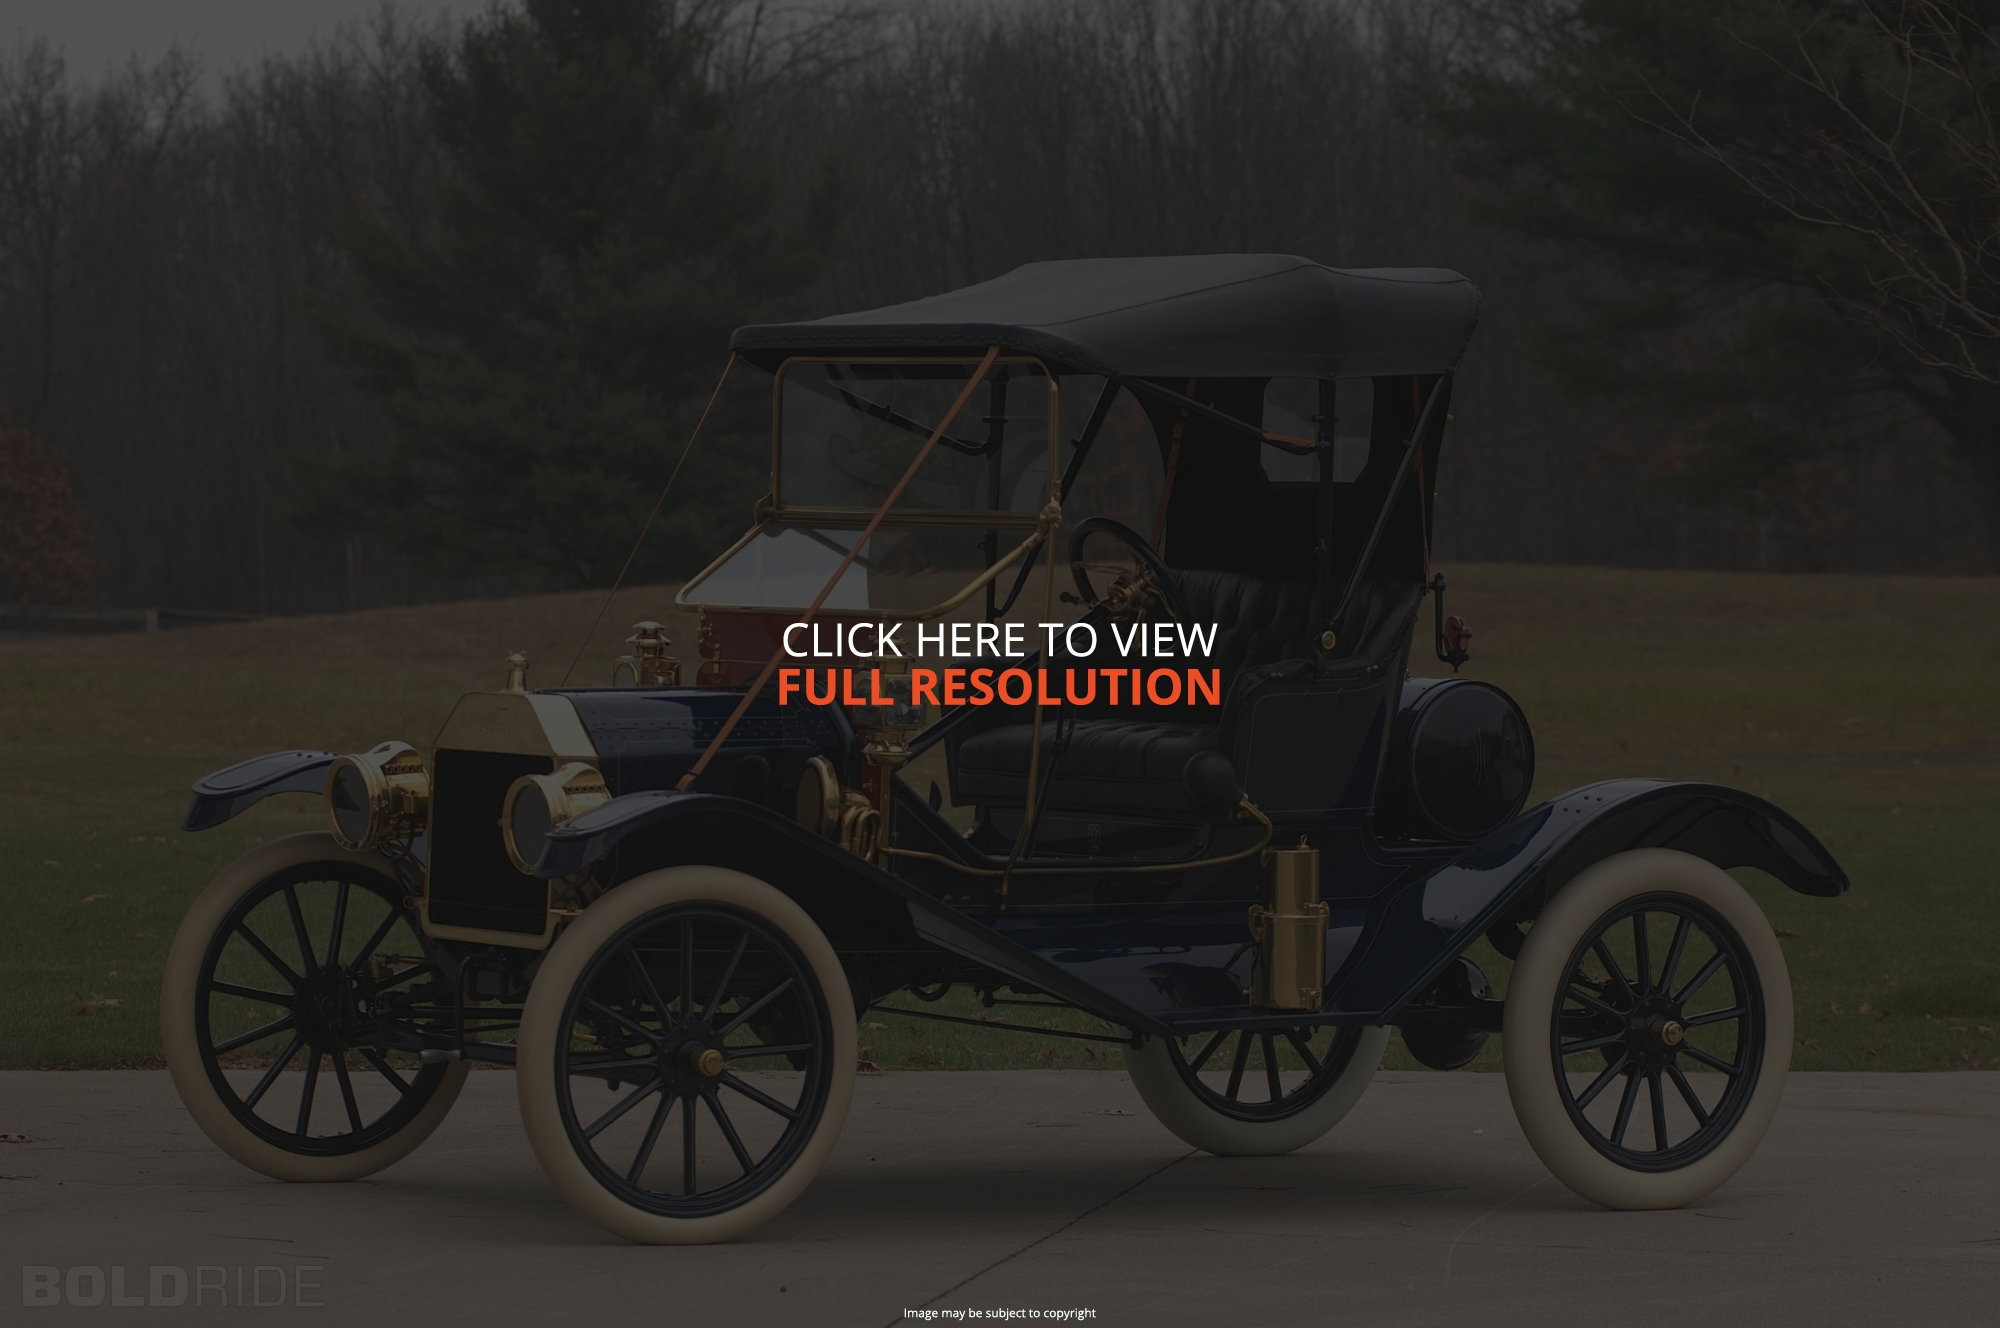 ford model t pictures #7